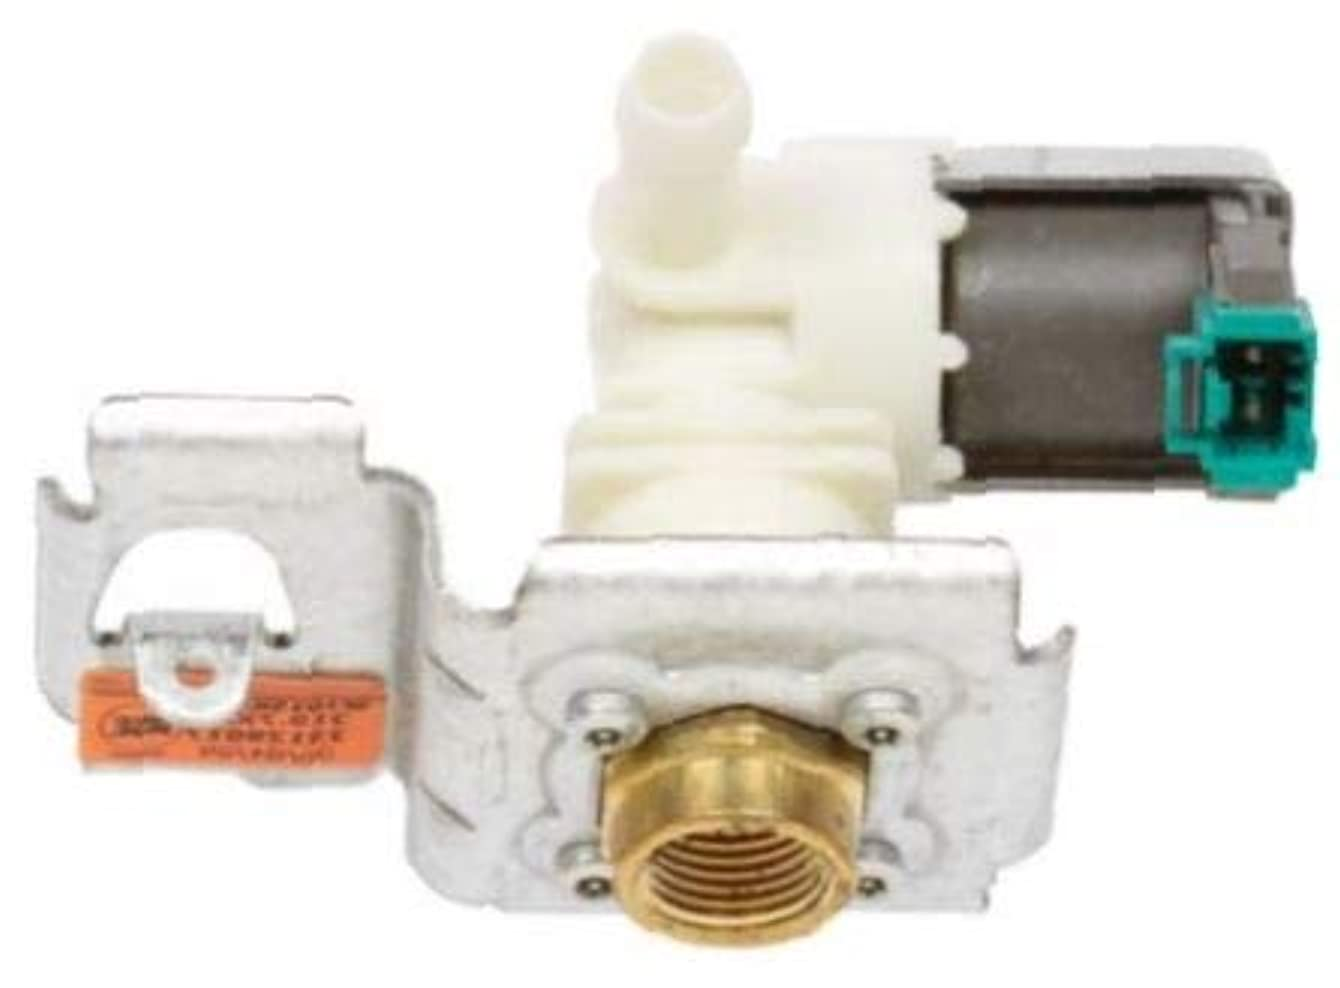 Compatible Dishwasher Water Valve W10158389 for Whirlpool Sears Kenmore Roper KitchenAid